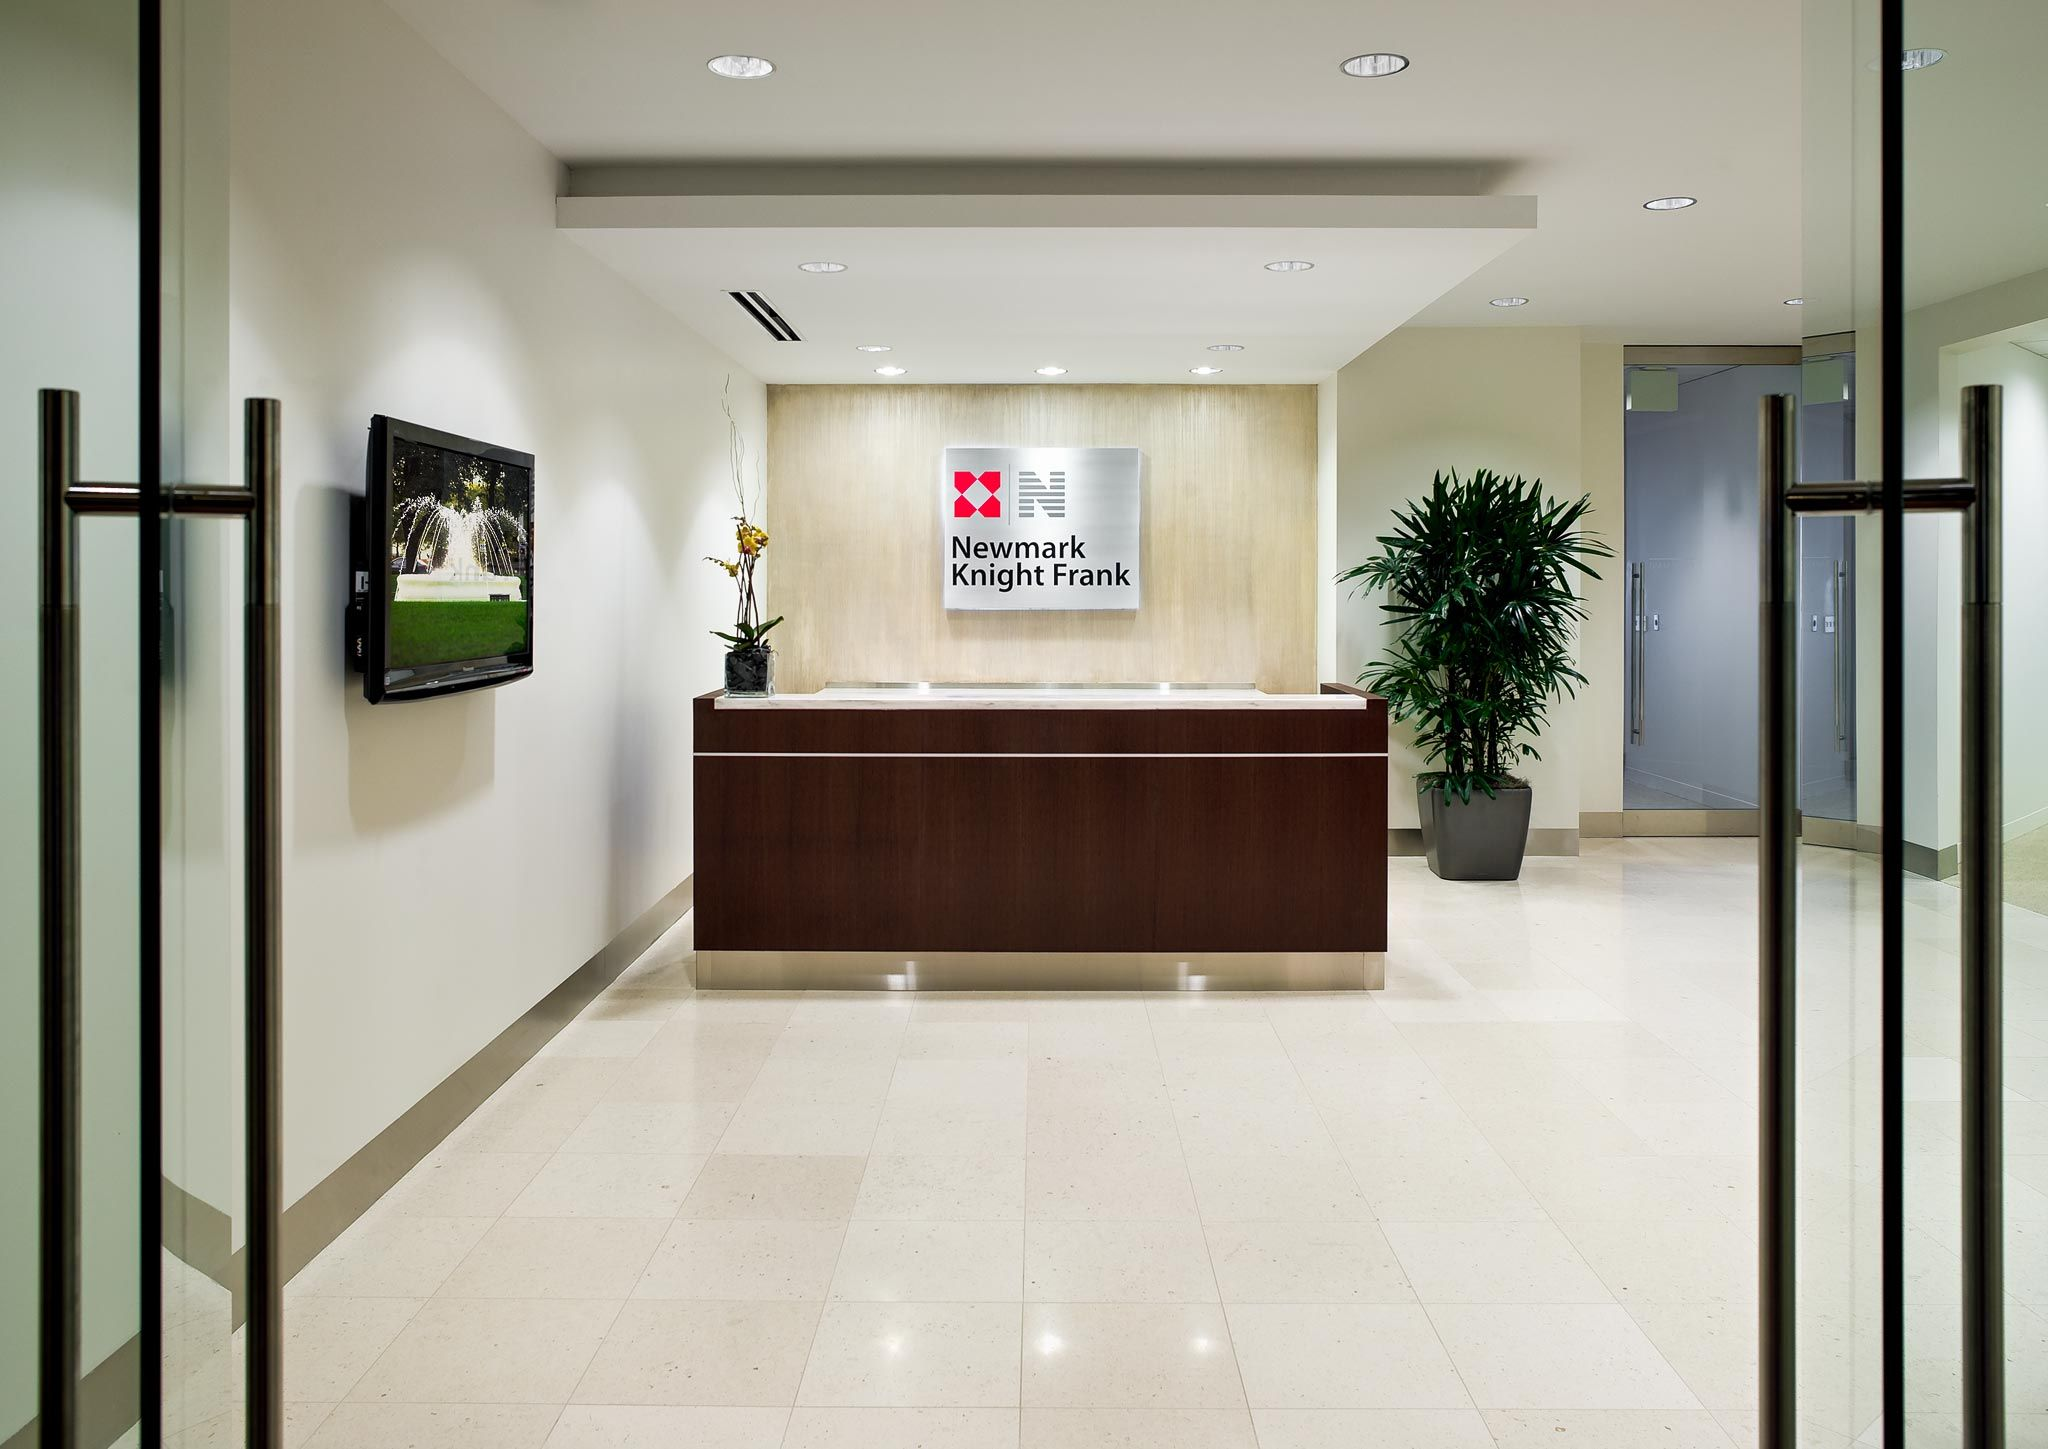 office reception area. Interior Reception Areas | Commercial Architecture And Interiors Photographer Sean Gallagher Office Area O